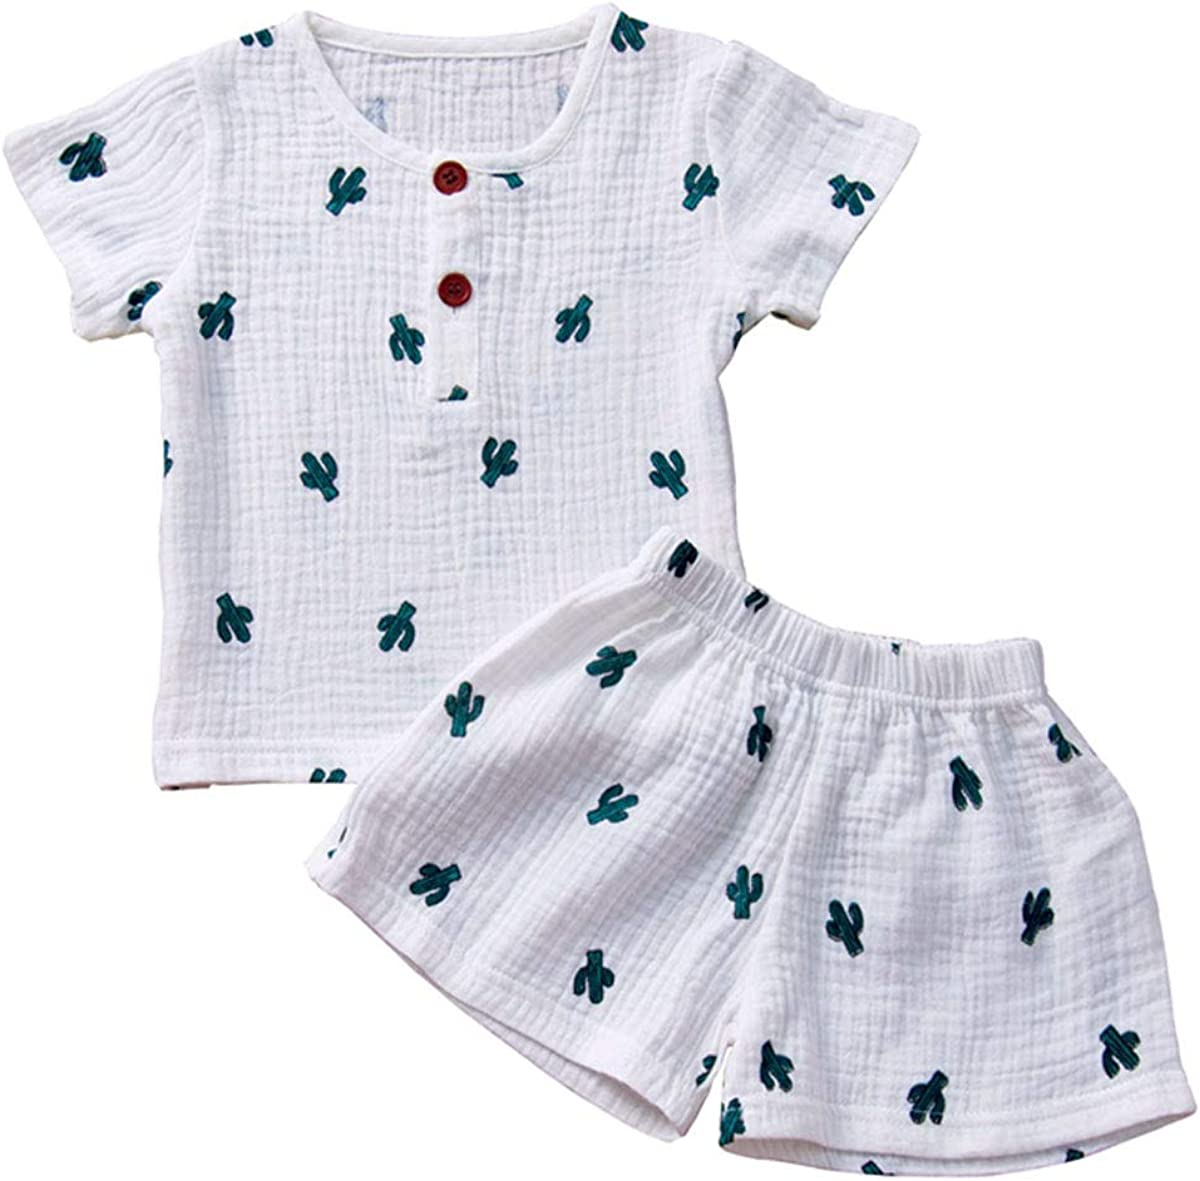 Mubineo Toddler Girl Boy Cotton Linen Comfy Short Sleeve Tops Shorts Sets Outfit Clothes